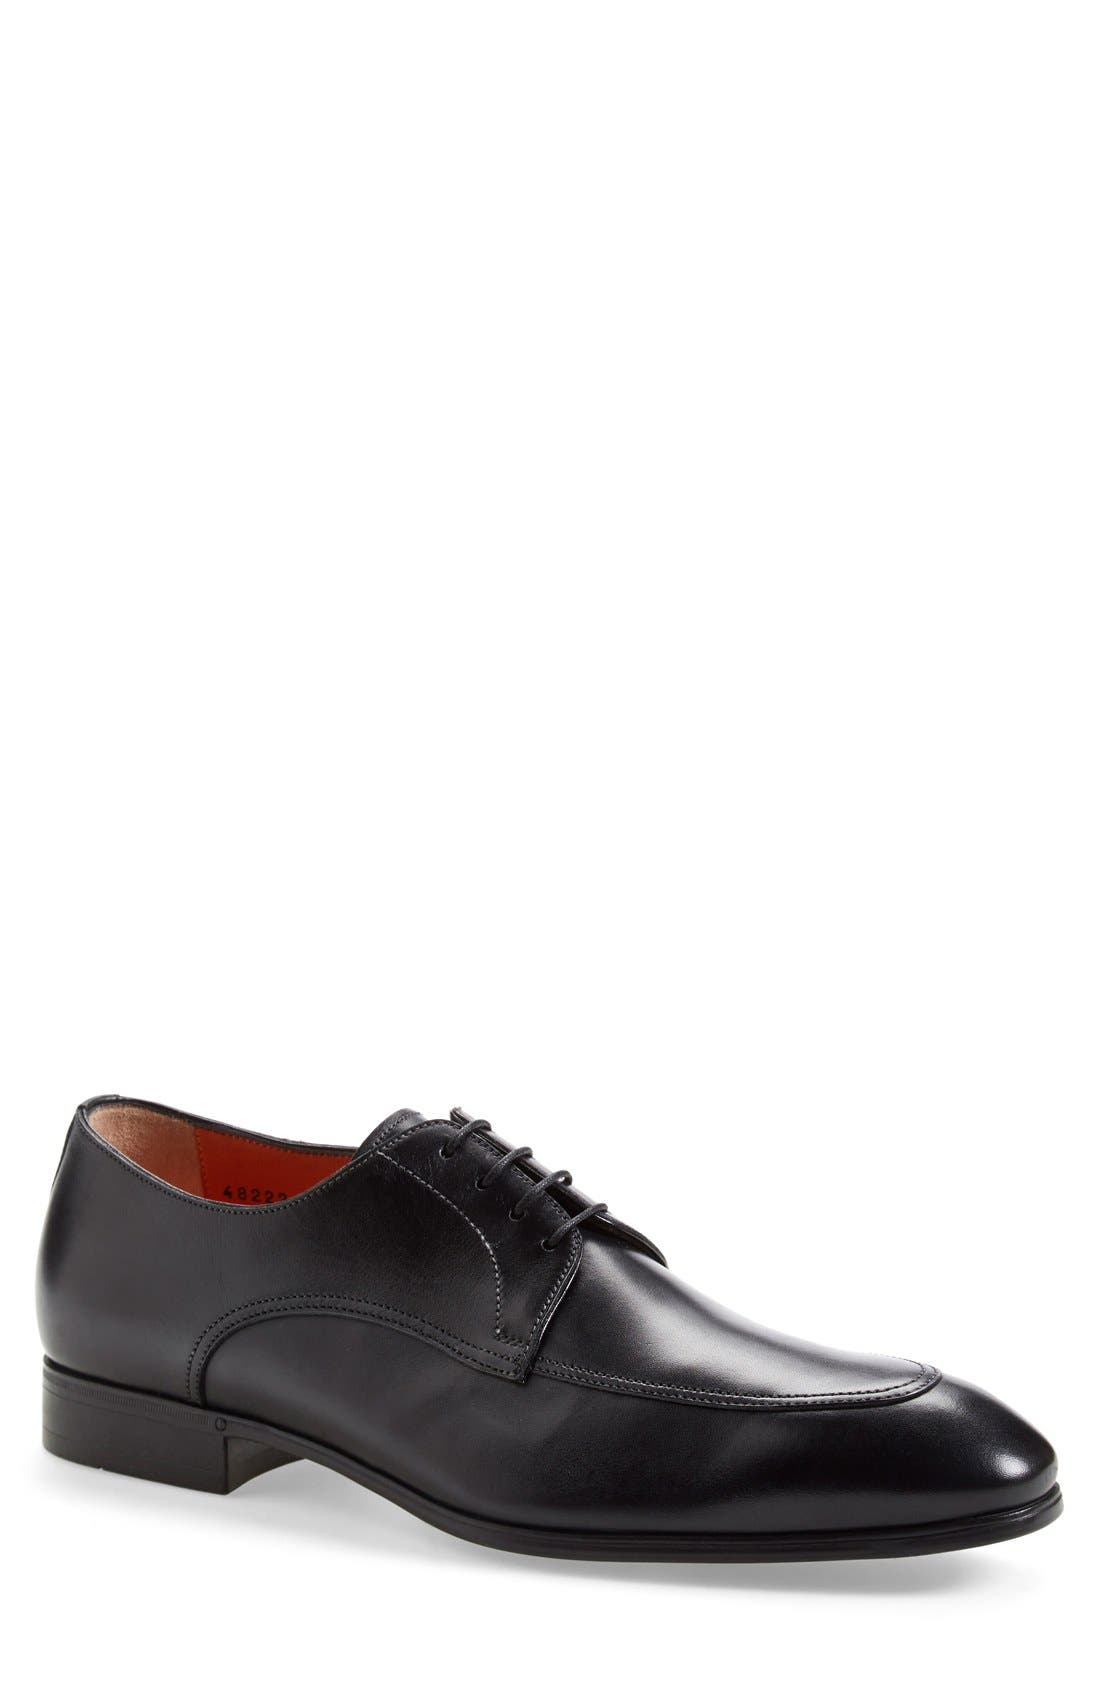 'Atwood' Apron Toe Derby,                         Main,                         color, Black Leather